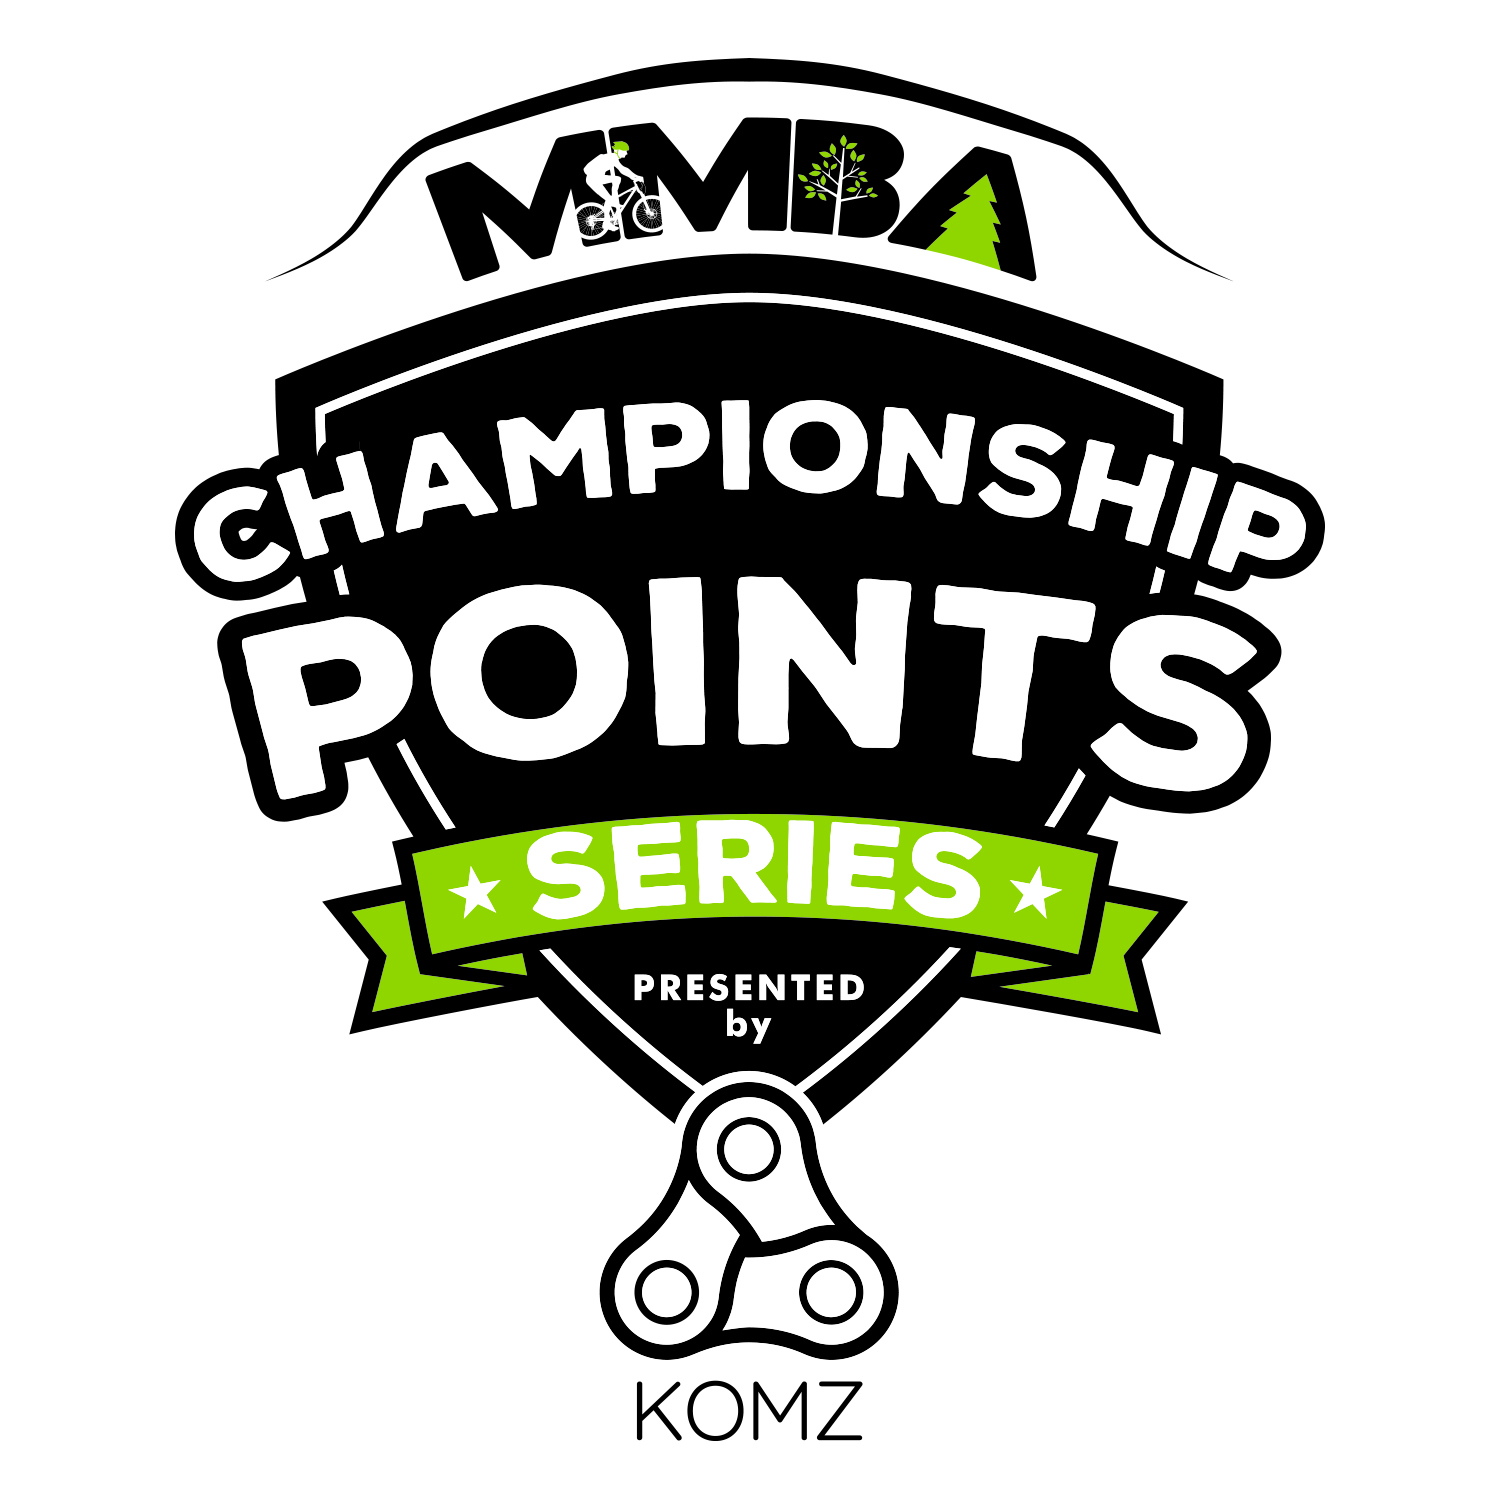 Championship Points Series